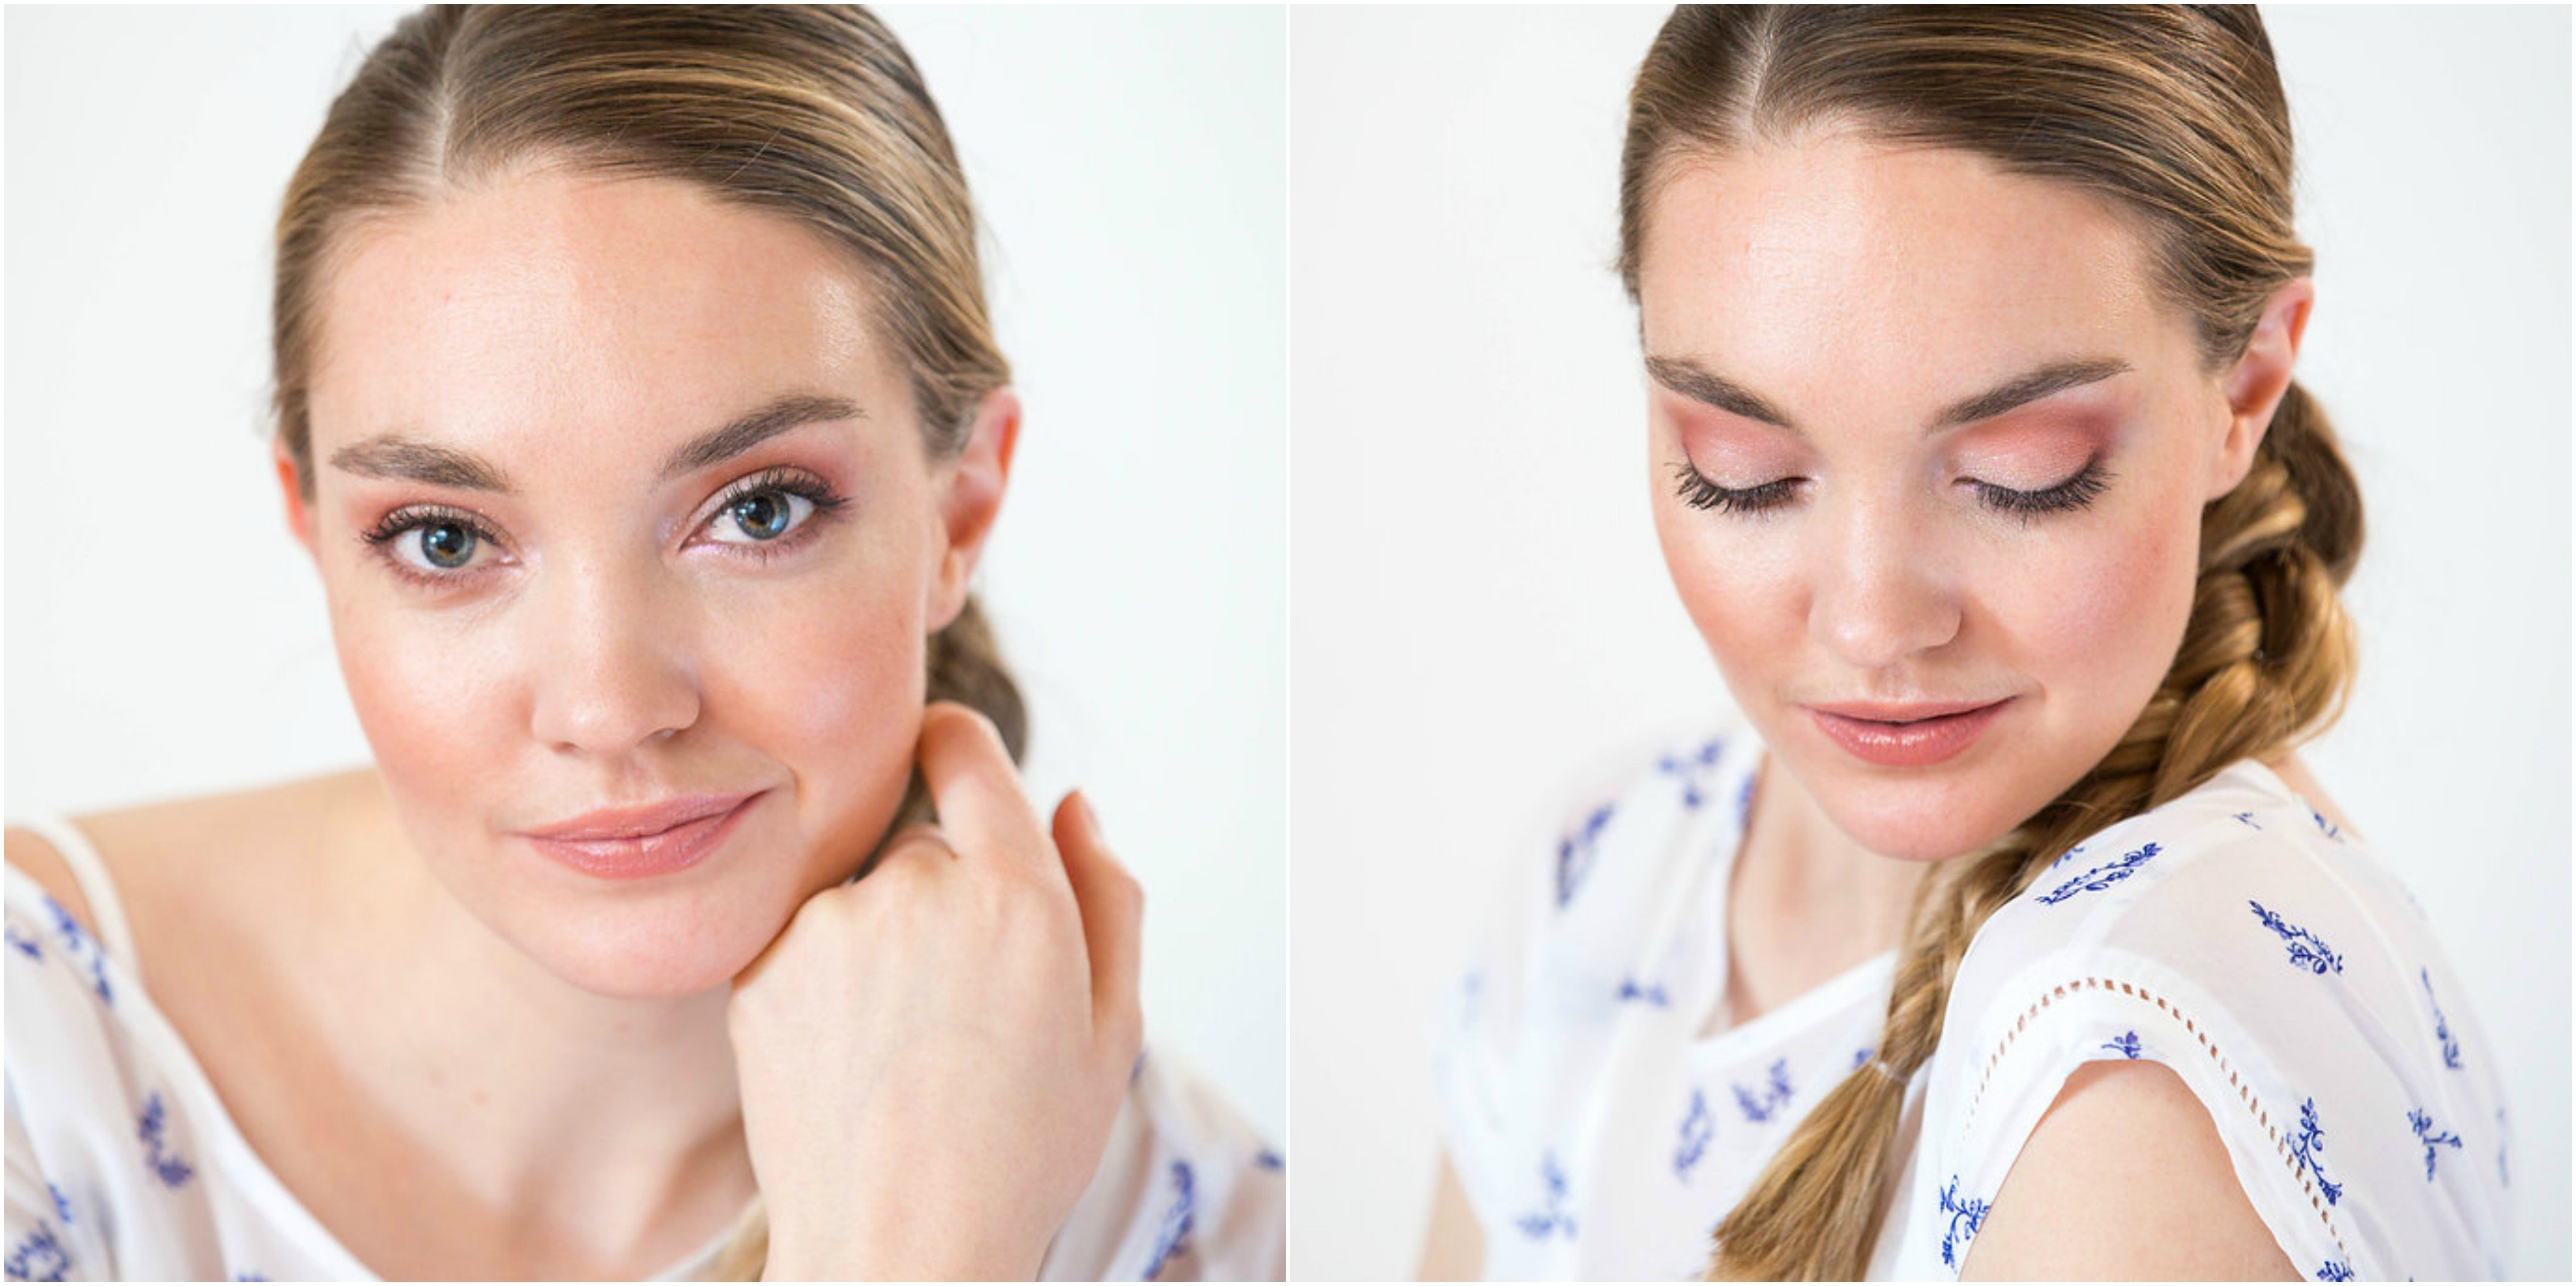 Effortless Bronzed makeup look for a casual weekend brunch with girlfriends created by Klava Z Ottawa makeup artist focused on bronzed glow, soft pink and brown eyeshadows and nude lips.